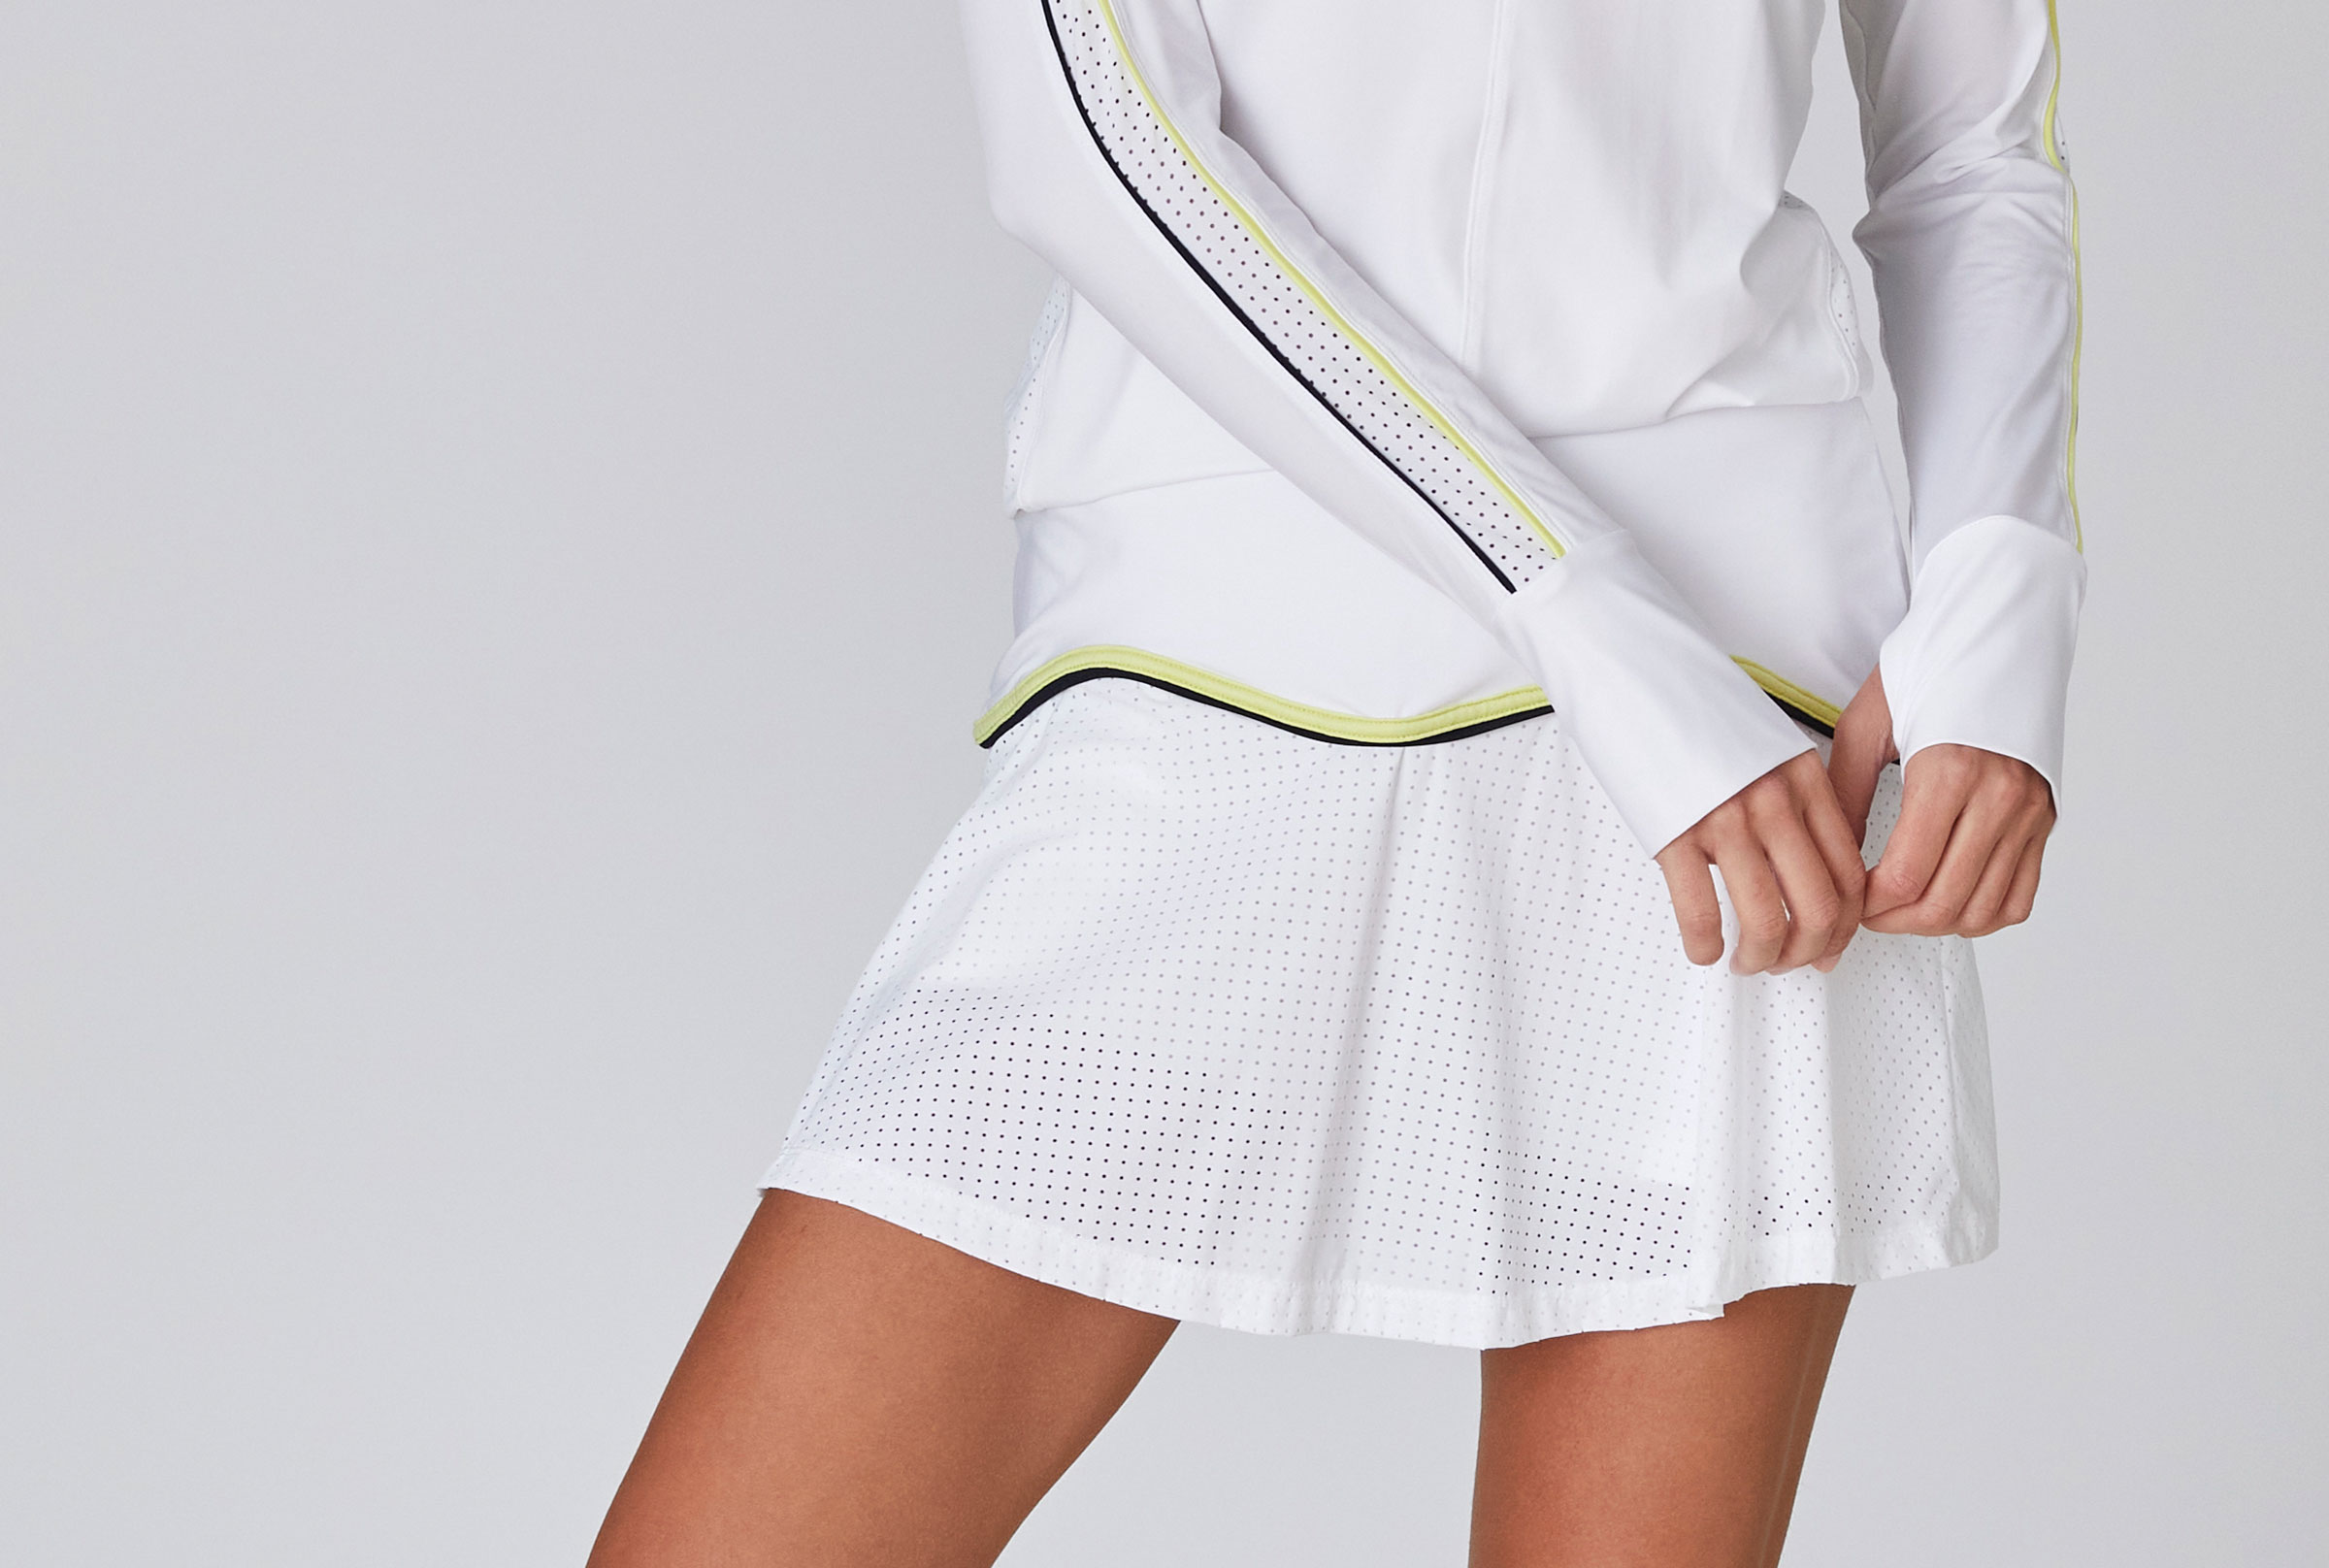 close up on woman modelling tennis outfit